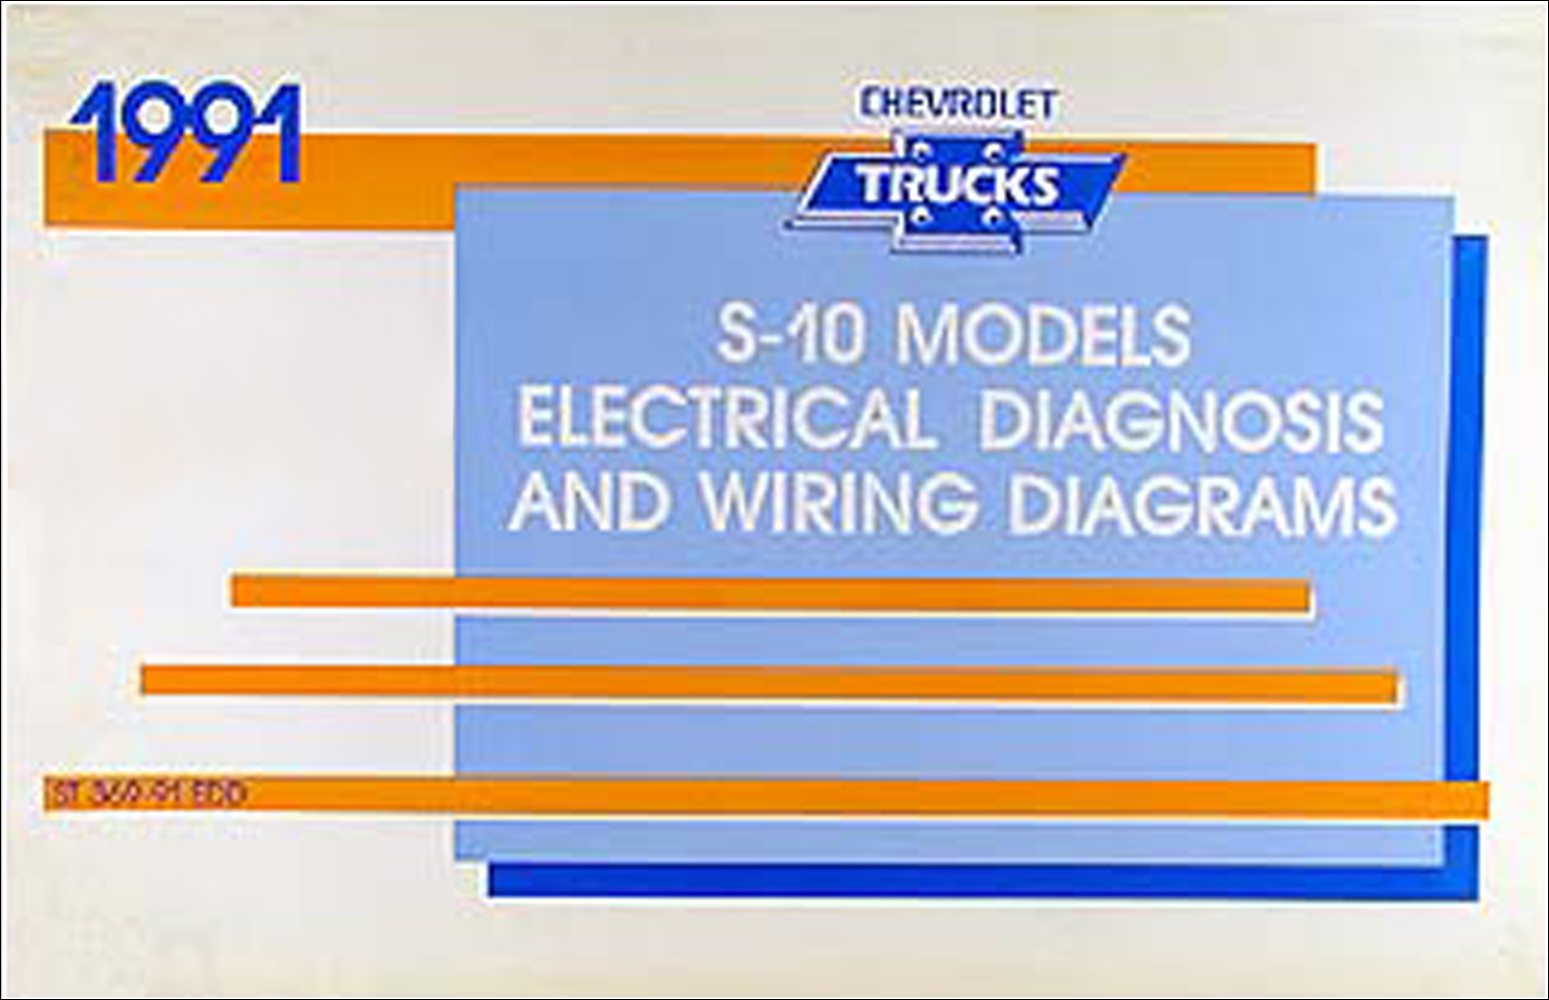 Chevy S10 Alternator Wiring Diagram Library 1996 Pickup 1991 S 10 Blazer Manual Original Rh Faxonautoliterature Com